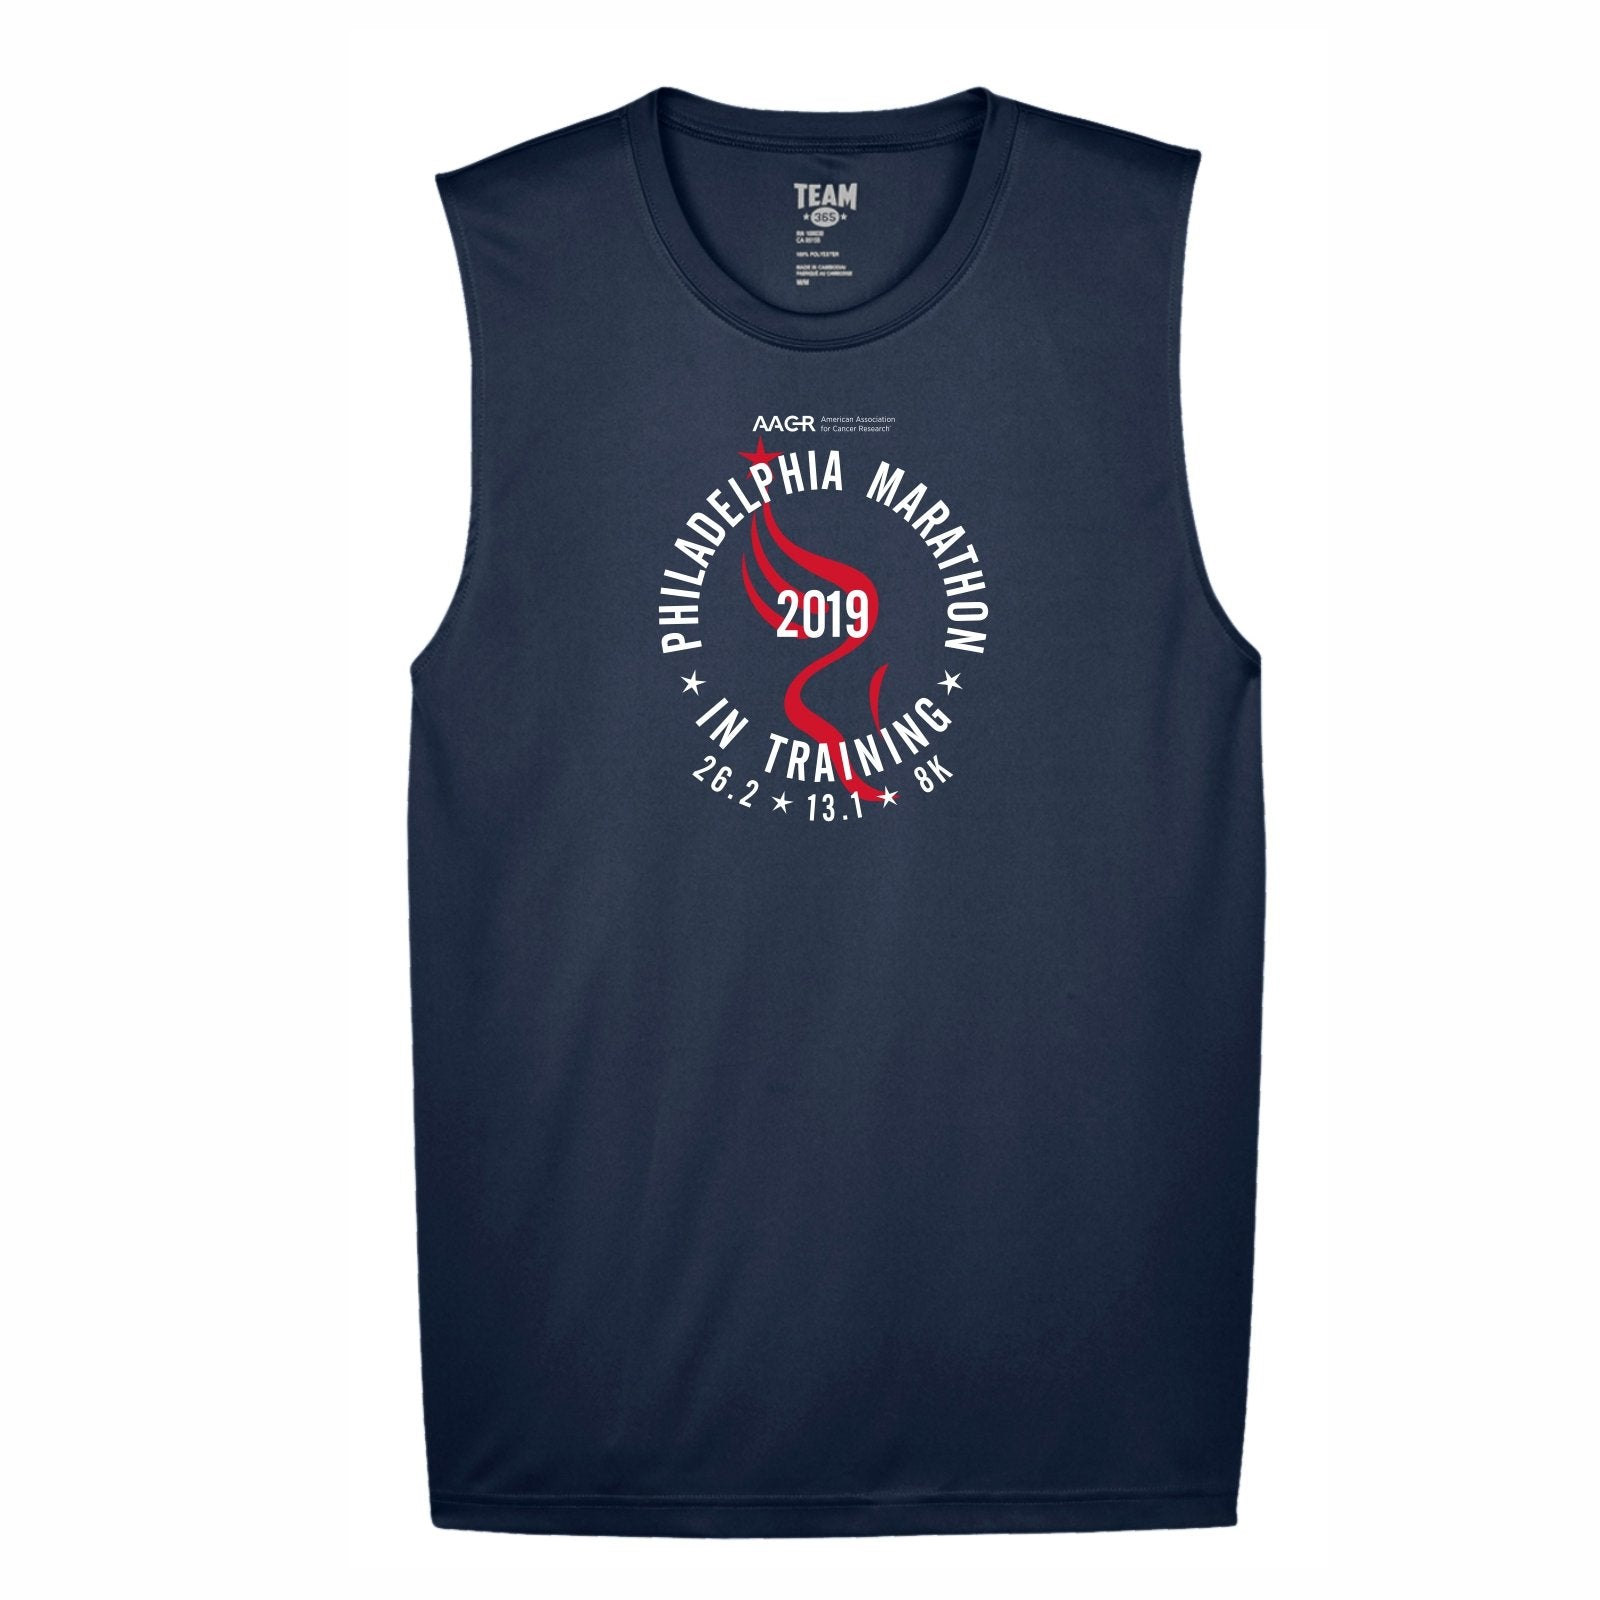 2019 AACR Philadelphia Marathon Men's In-Training Sports Tank - Navy